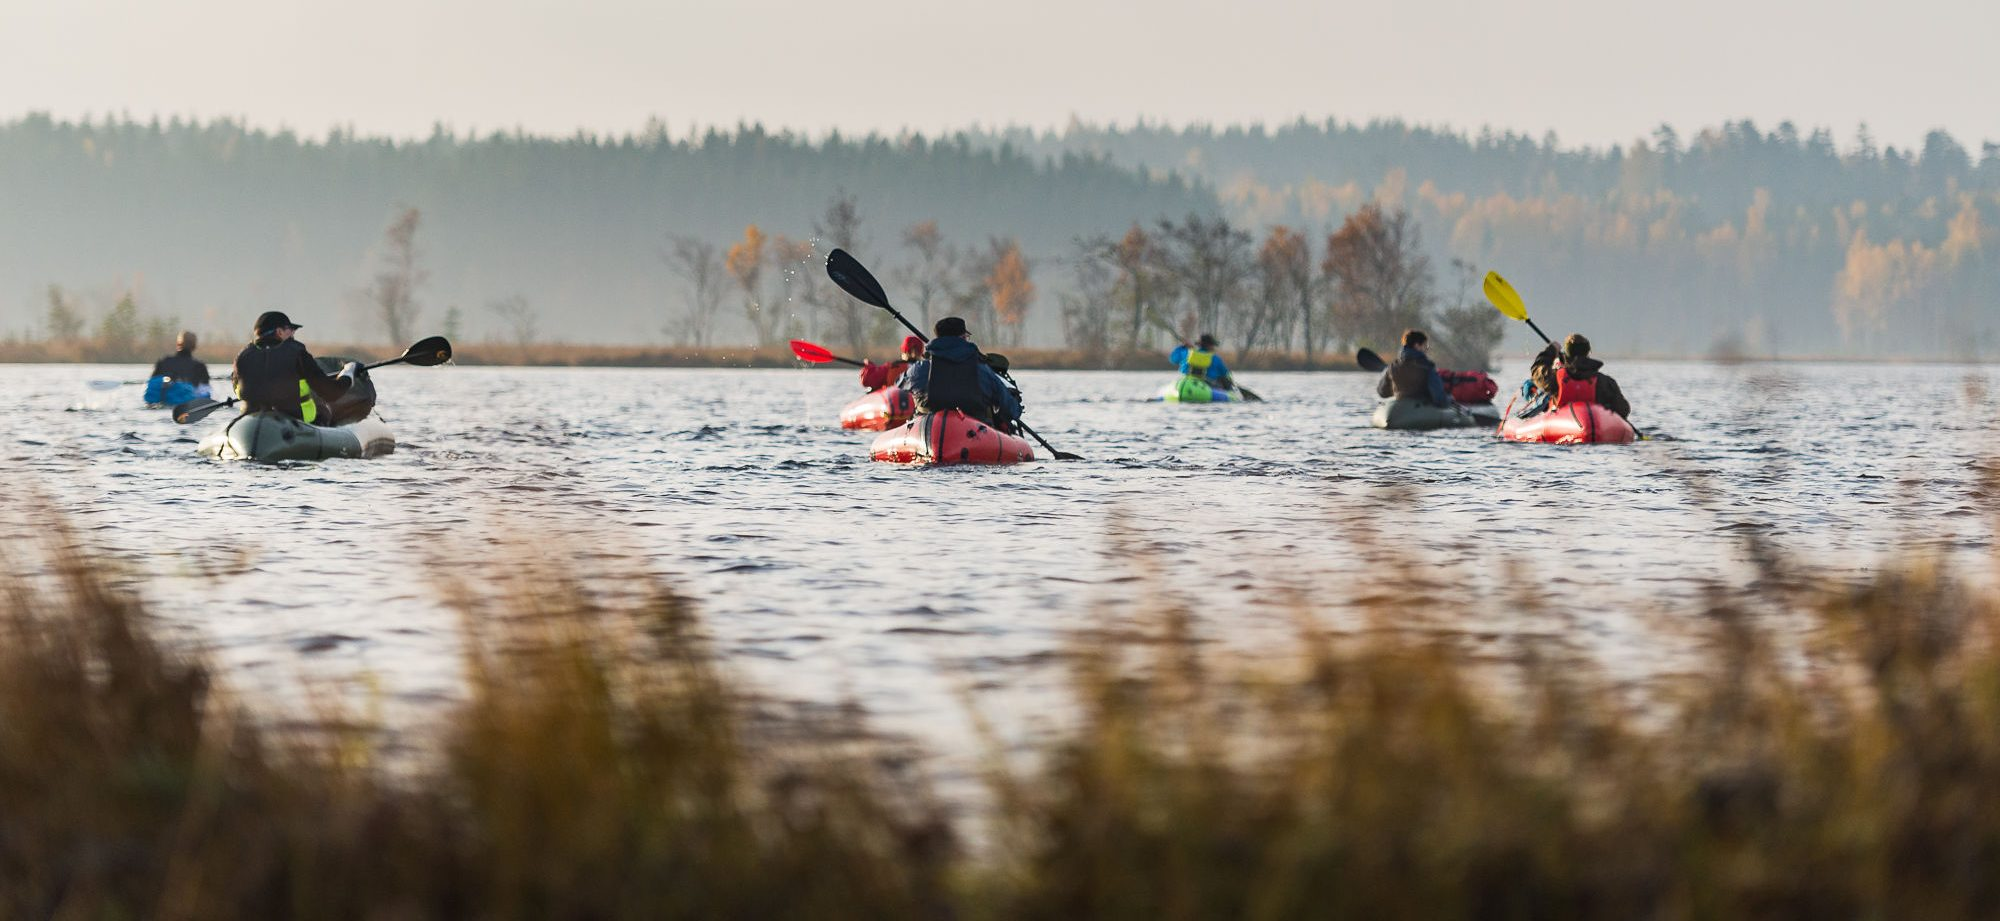 Packrafting Finland